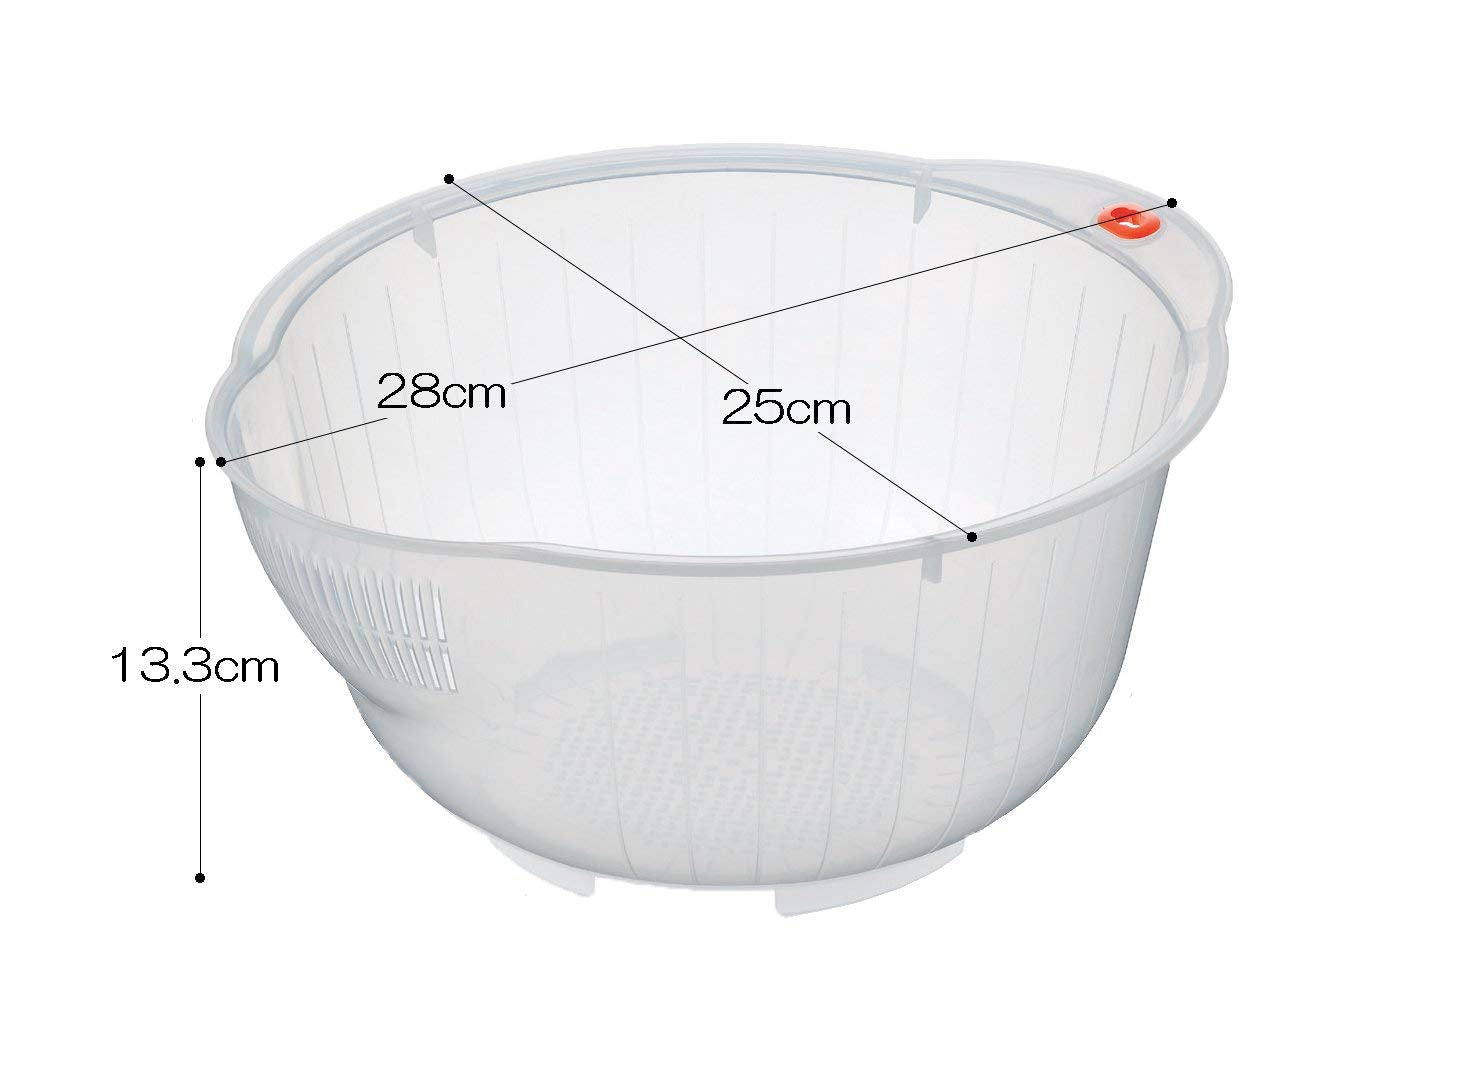 Inomata Japanese Rice Washing Bowl with Side and Bottom Drainers White